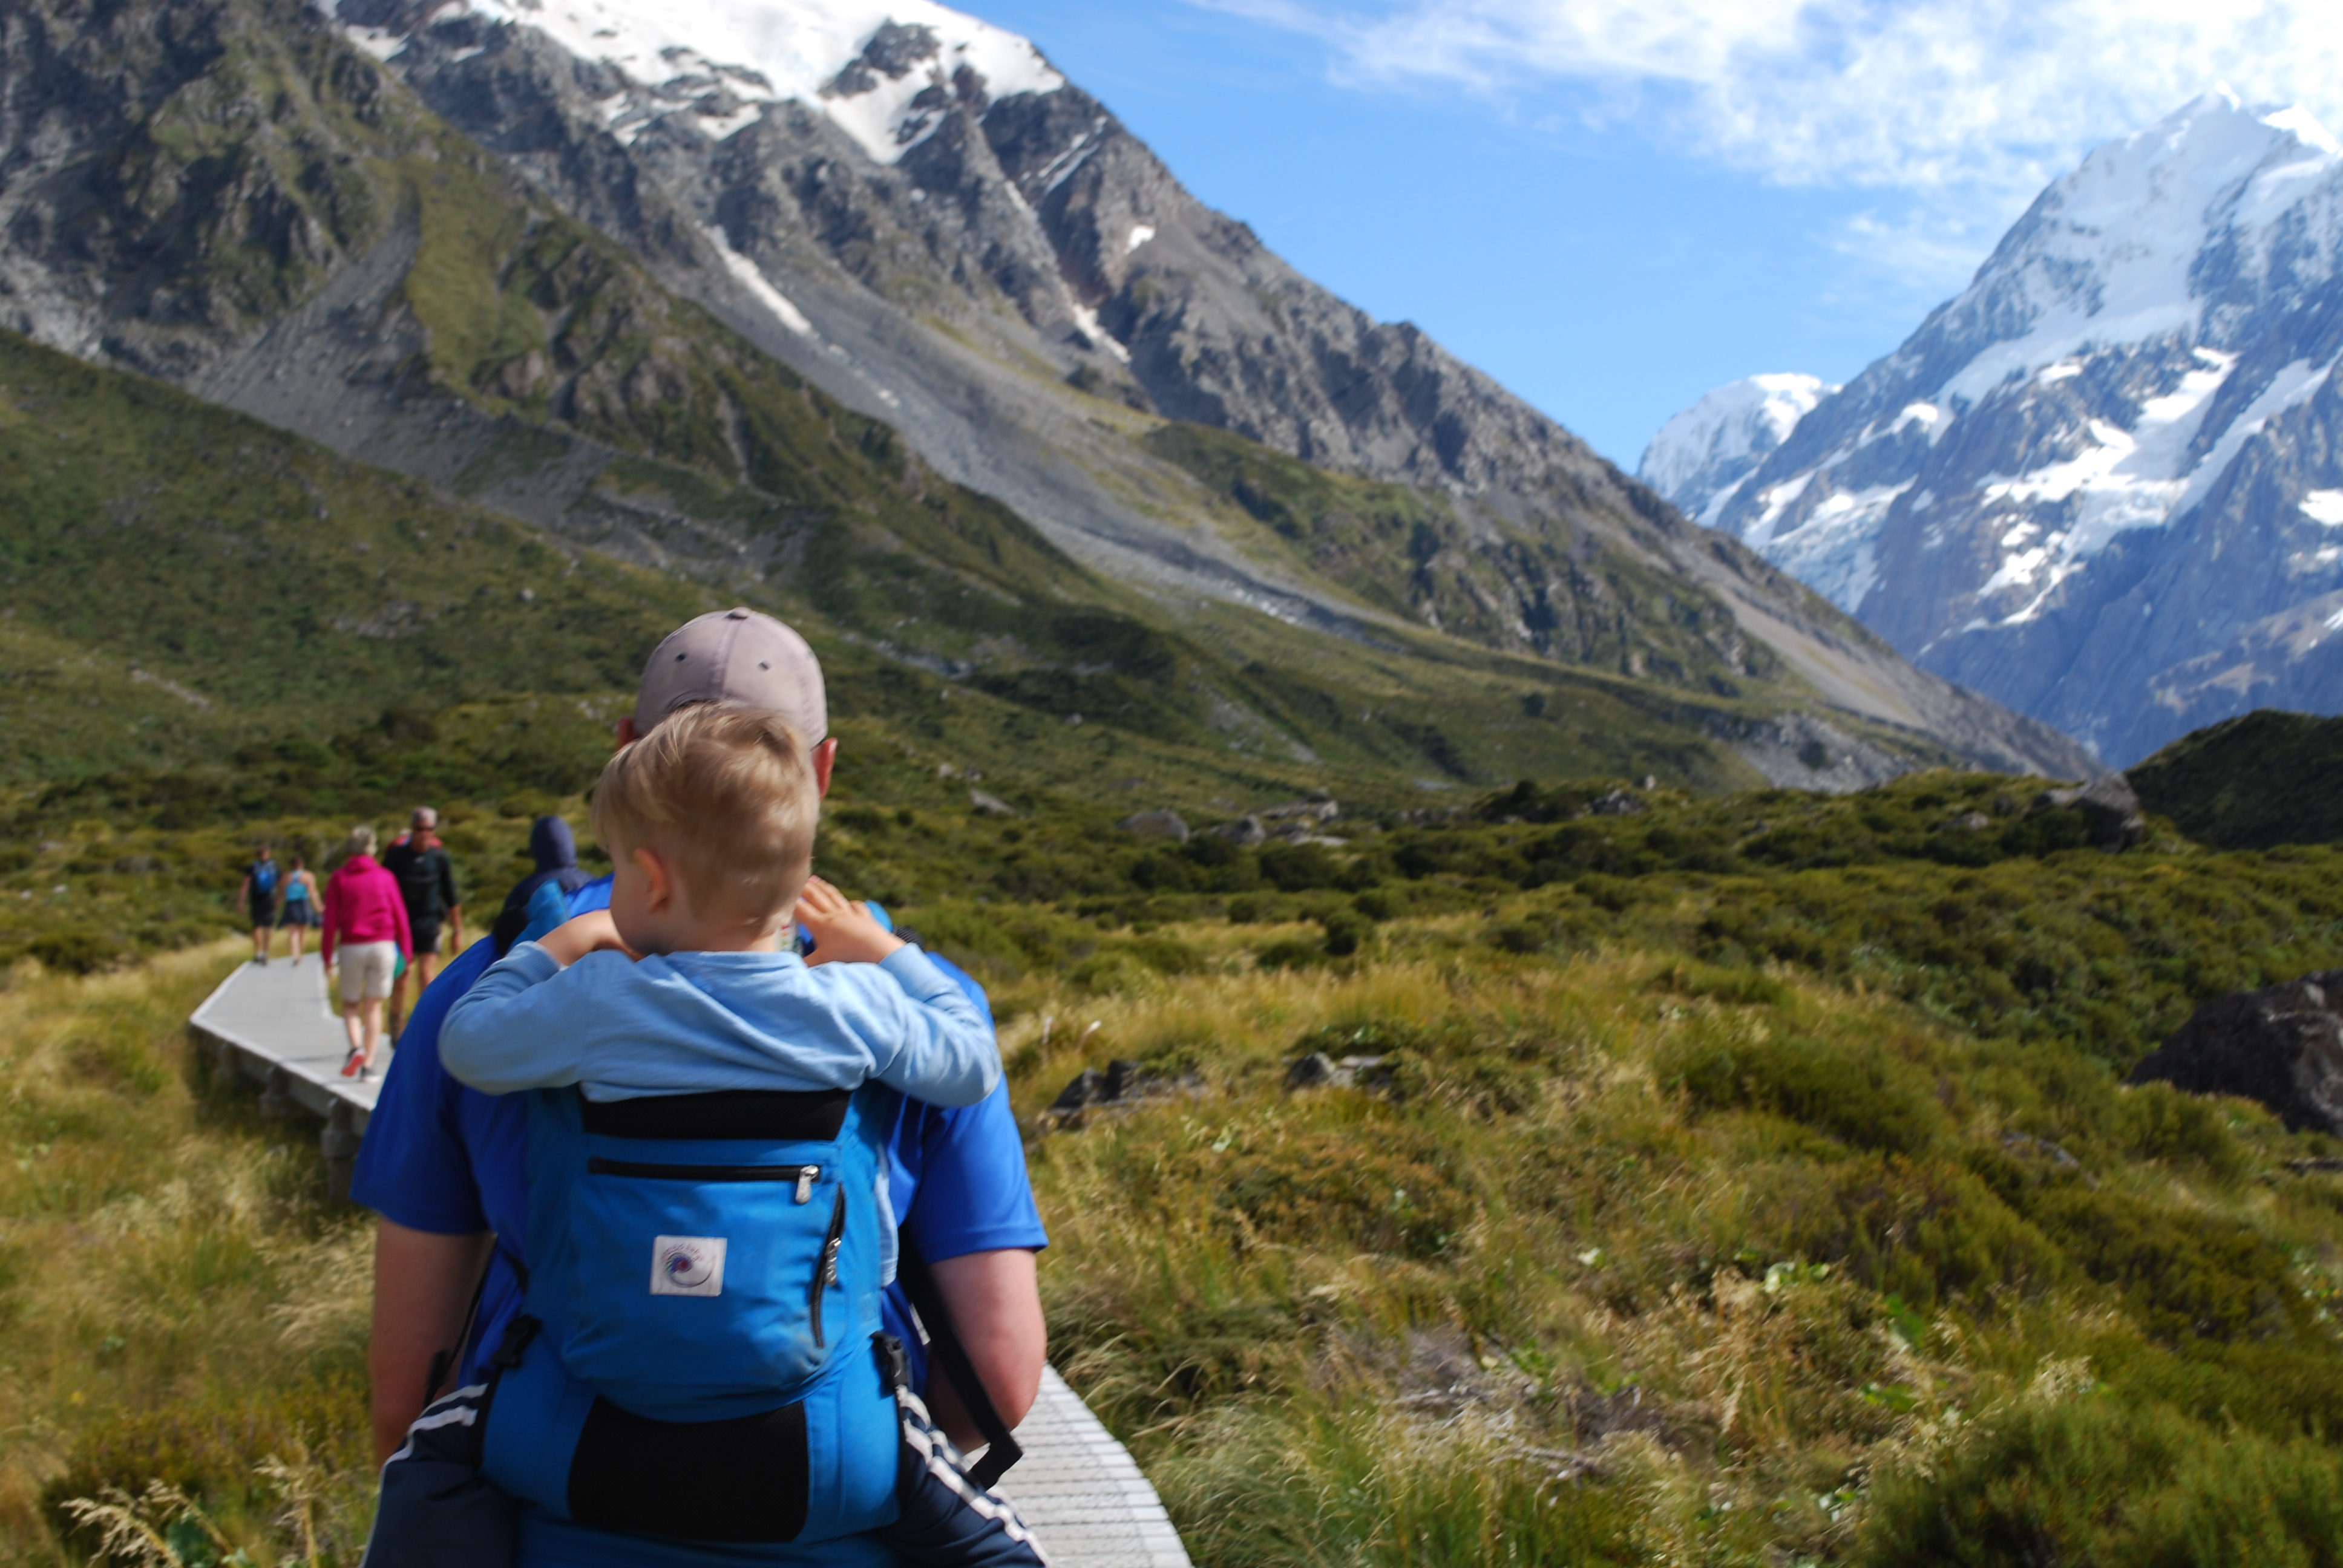 Ashley and Nathan, from Backyard Travel Family, packed in an Erogbaby backpack, trek the Hooker Valley Track in late Summer, Mt Cook National Park, New Zealand